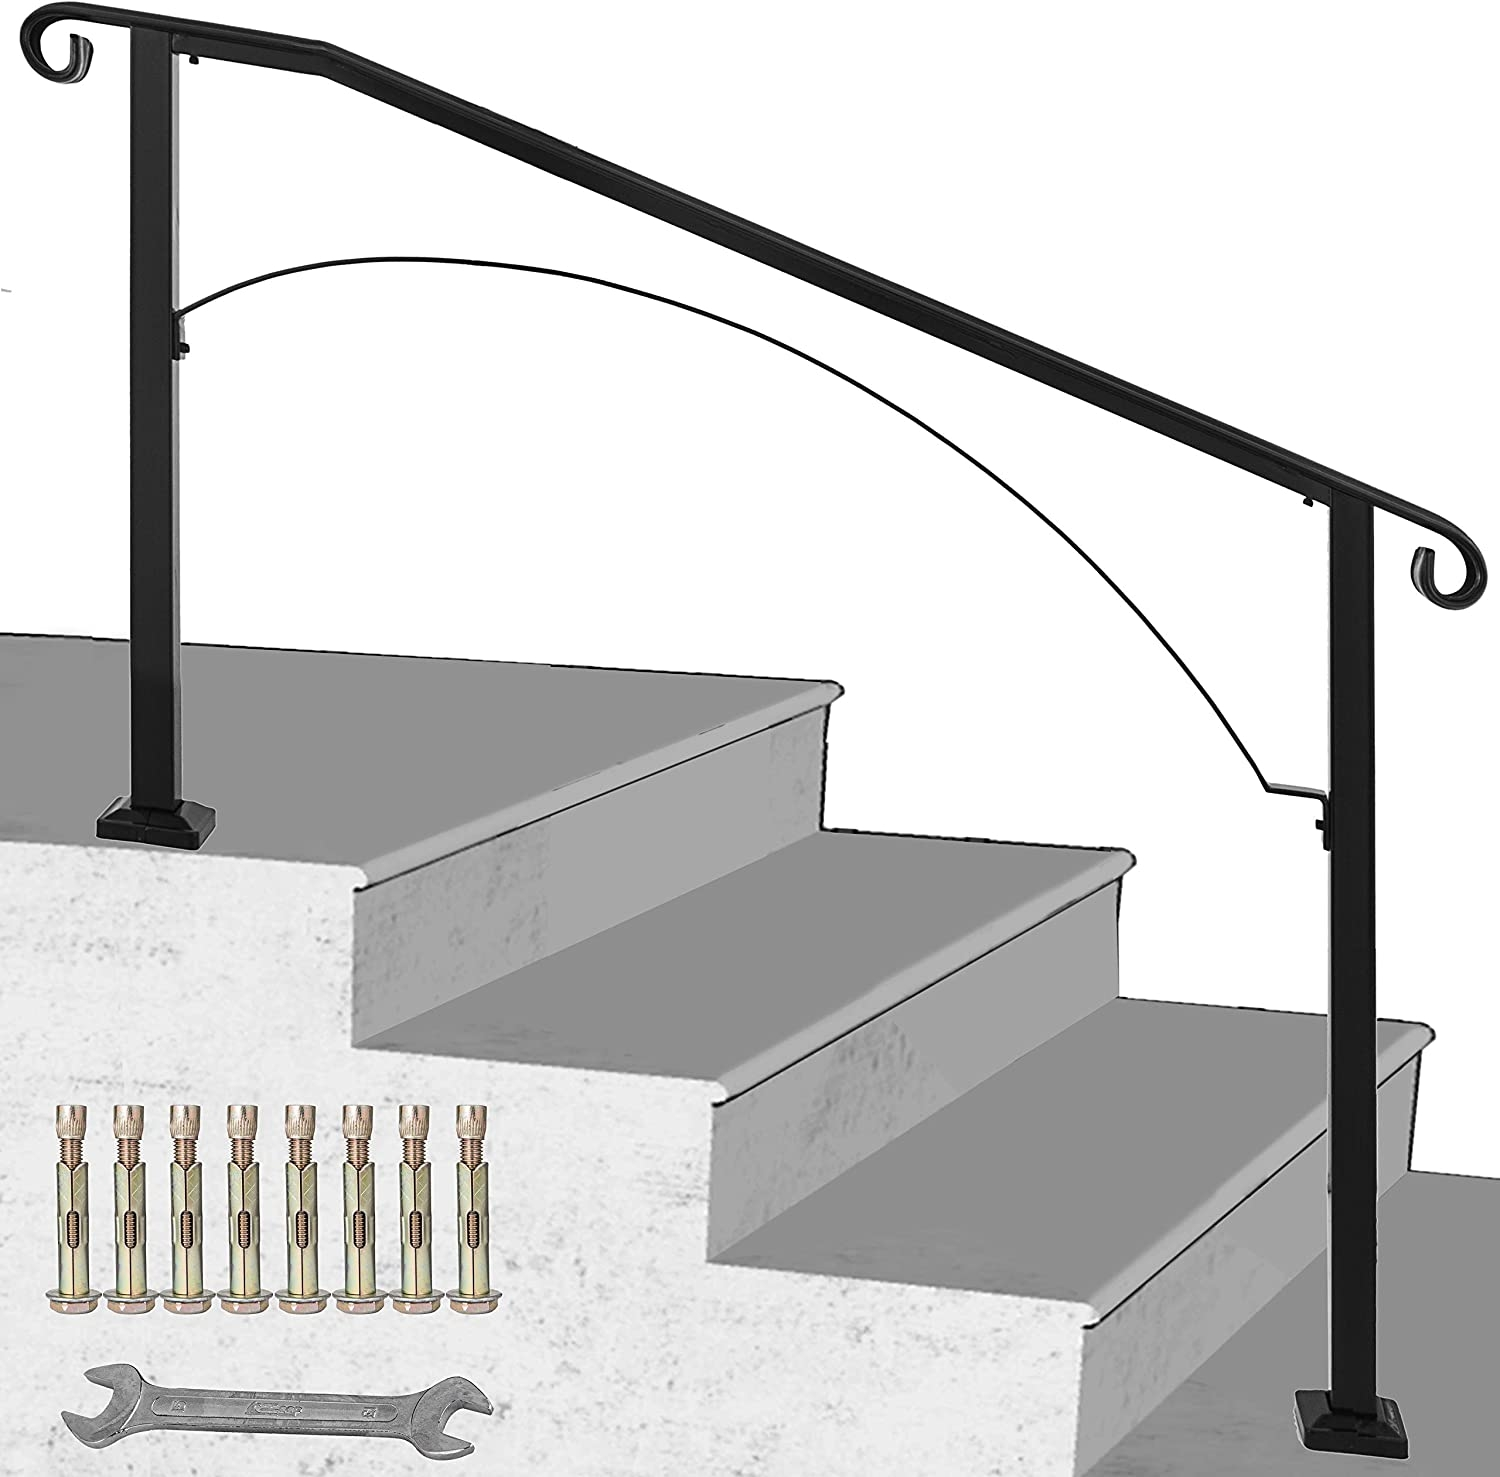 Happybuy Handrail Arch 3 Fits 3 Or 4 Steps Matte Black Stair Rail   Iron Handrails For Outdoor Steps   Antique   Deck   Front Door   Entrance   Ornamental